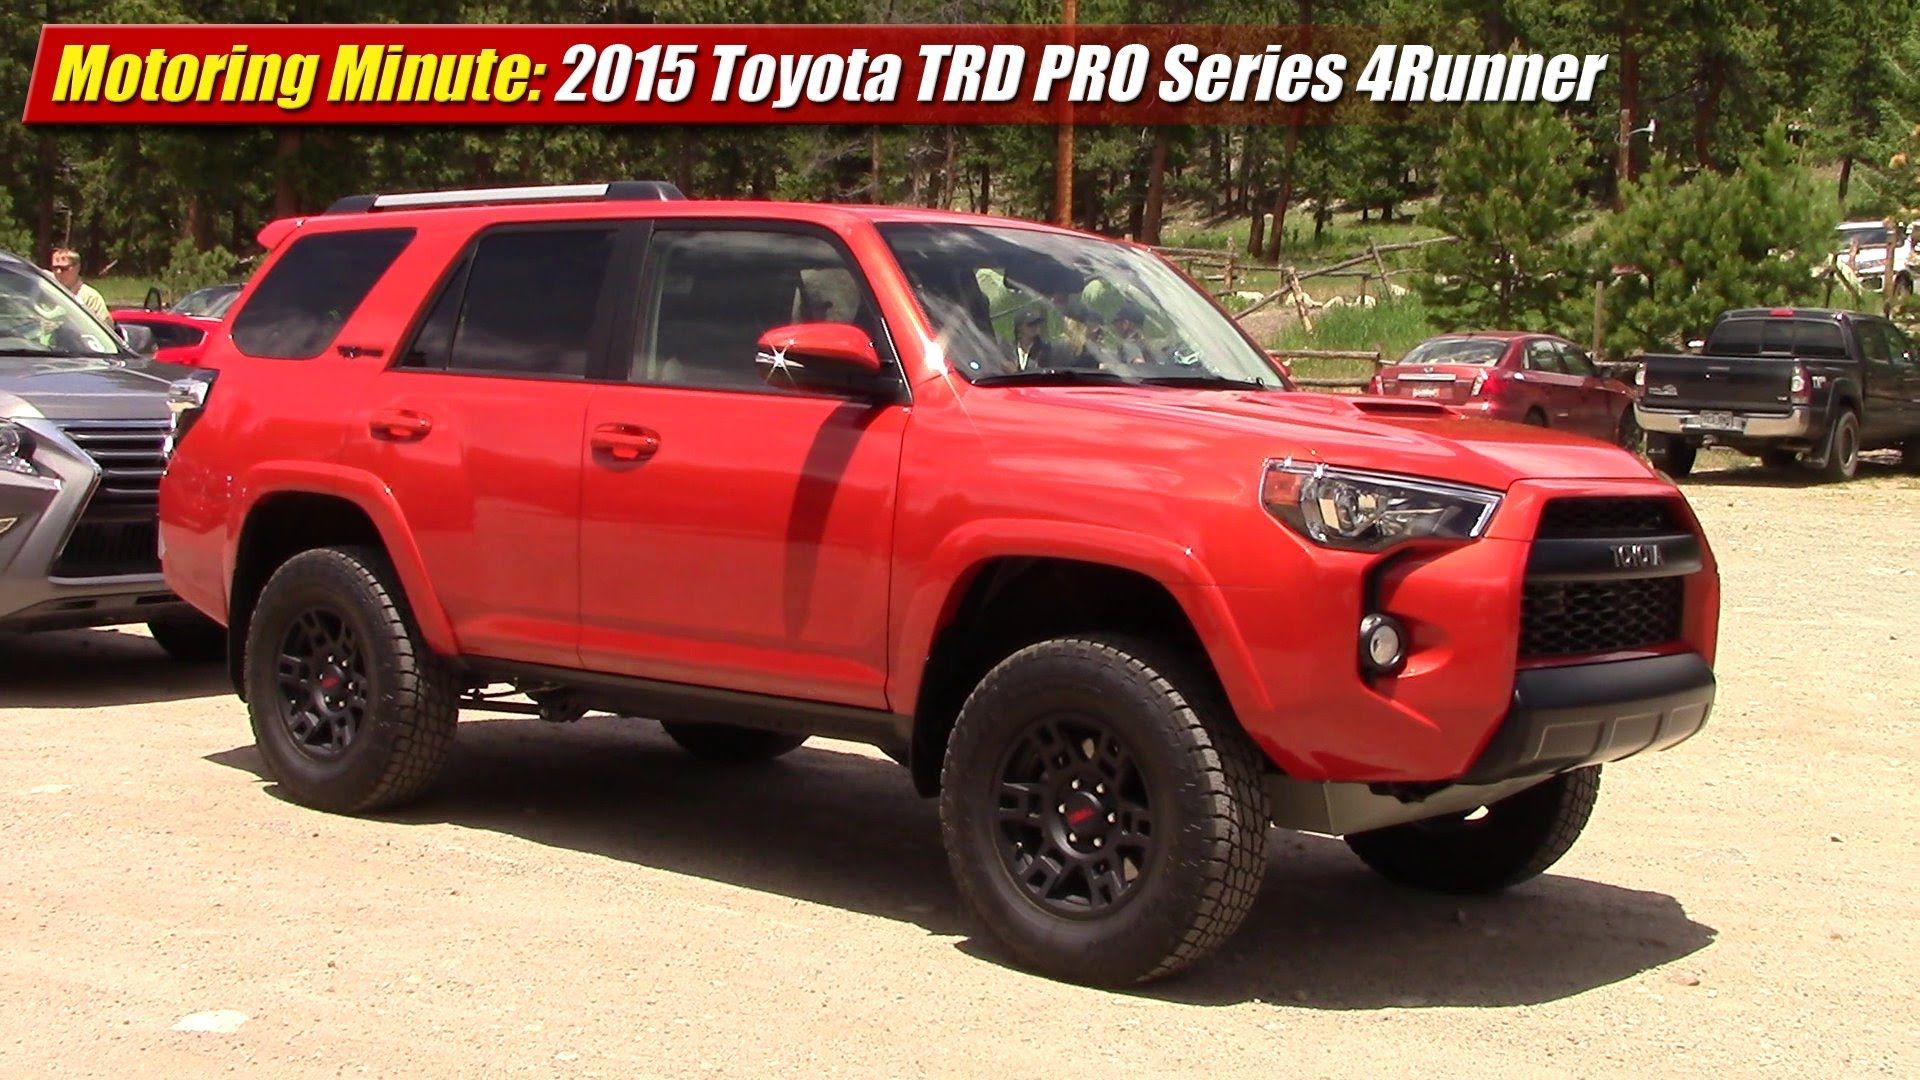 2017 toyota 4runner trd pro series car photos catalog 2018. Black Bedroom Furniture Sets. Home Design Ideas